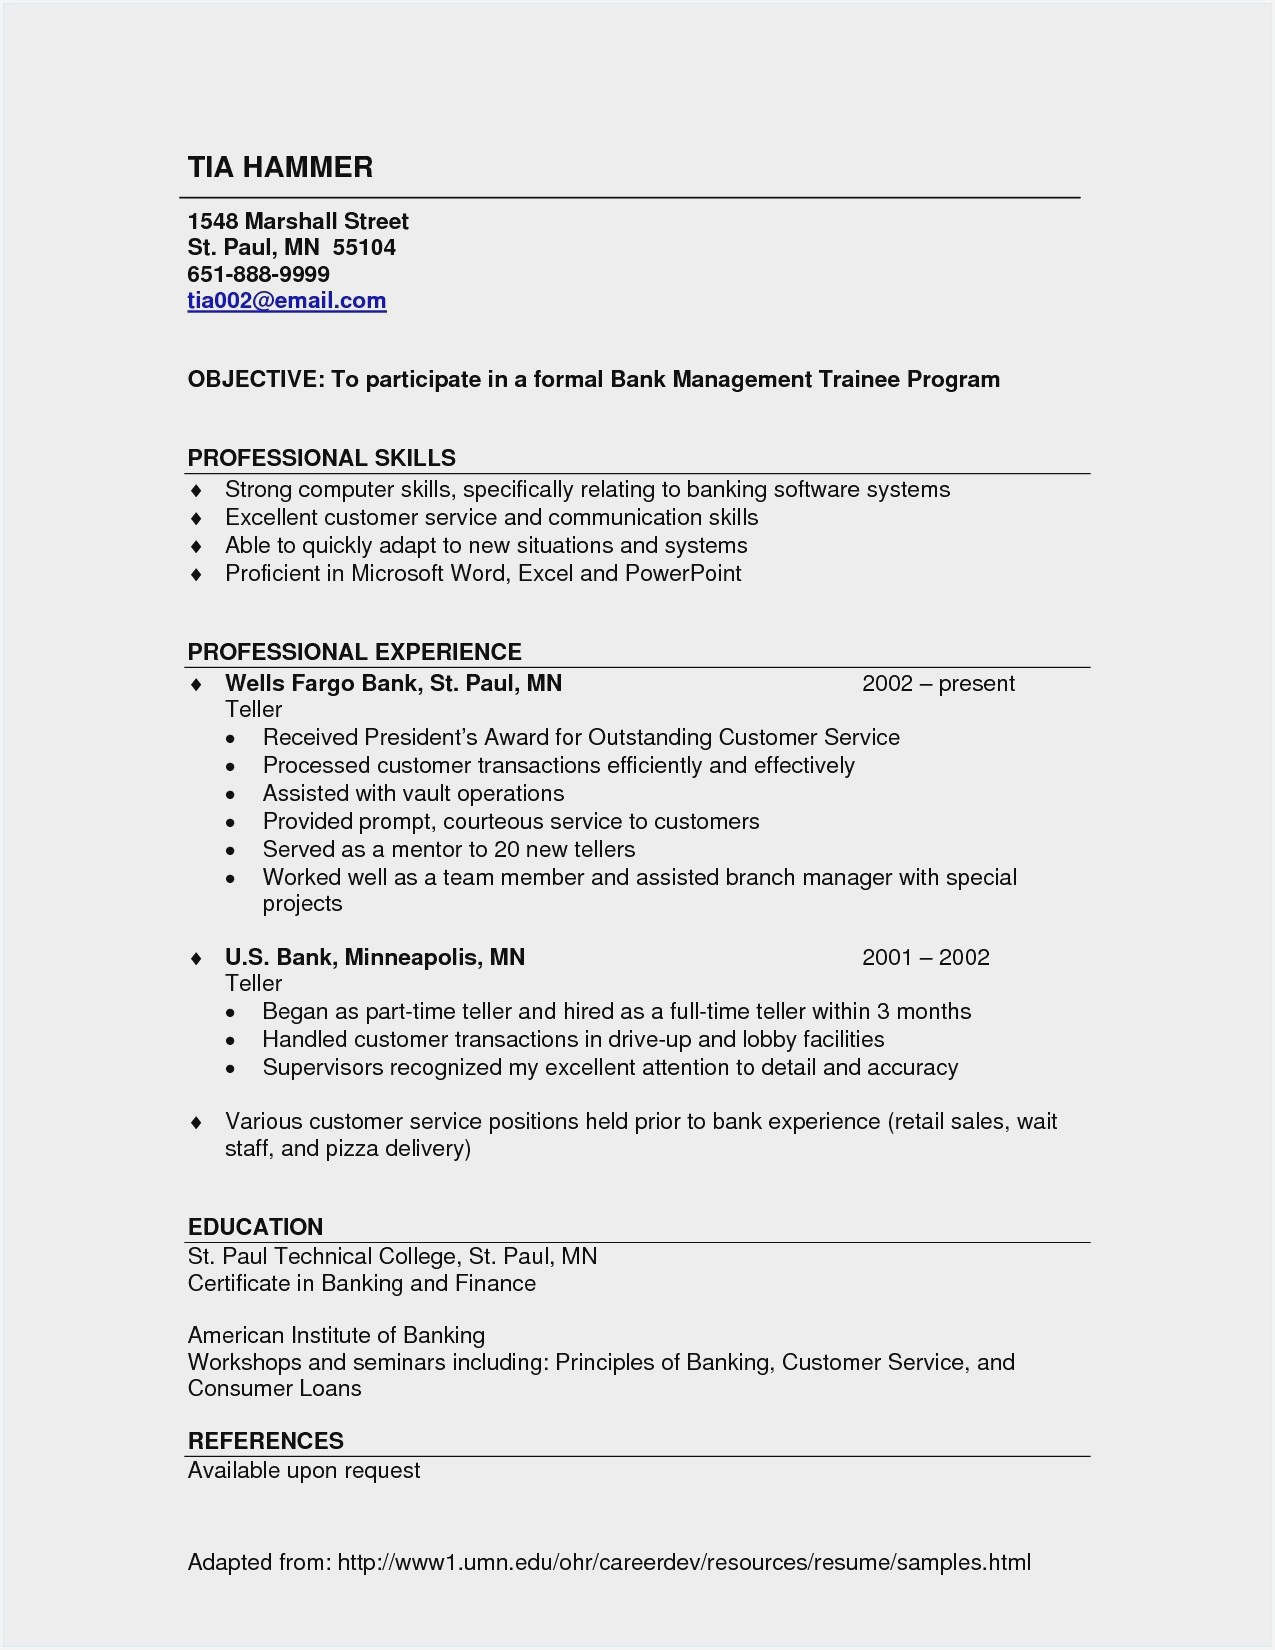 awesome resume headlineamples for project manager sample best laspoderosasteatro headline Resume Resume Headline Examples For Customer Service